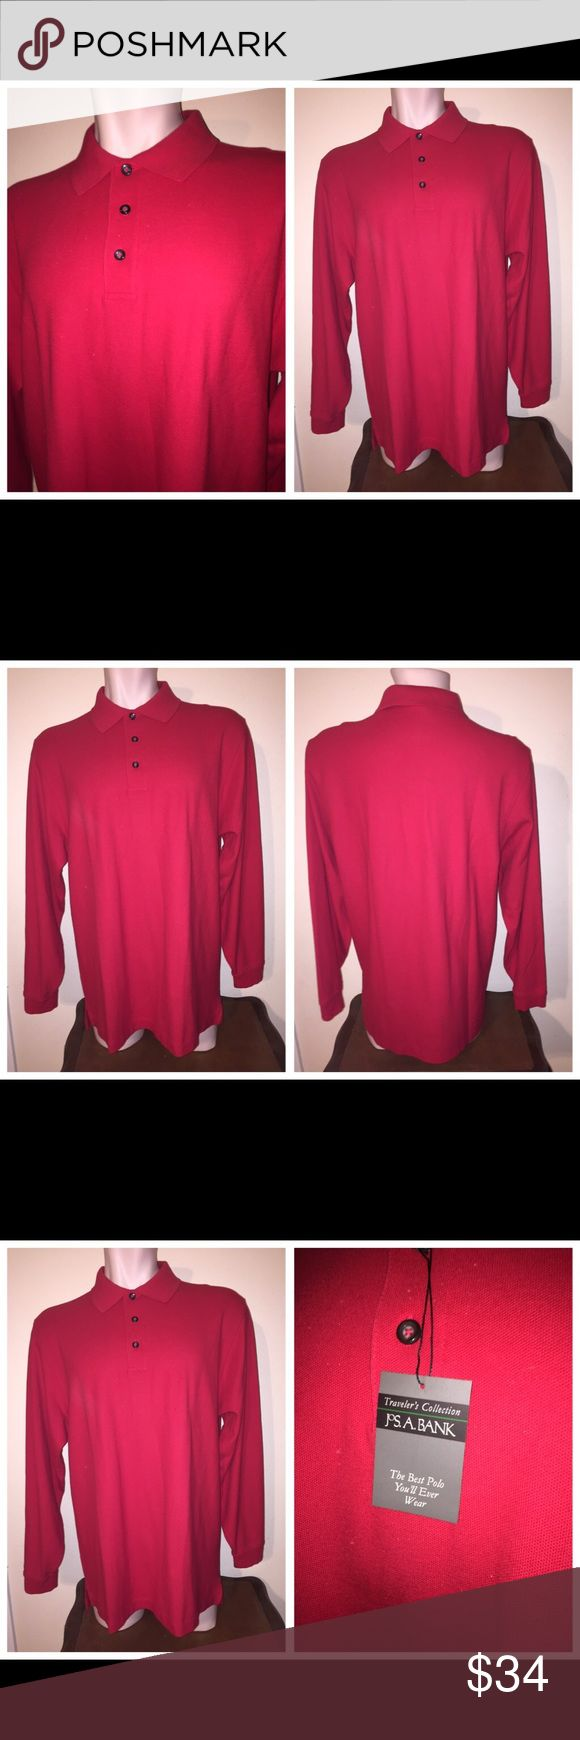 NWT Jos. A. Bank l/s cotton polo shirt Red Sz L 051817-15 Jos. A. Bank long-sleeve cotton polo shirt, cherry red, Sz L Jos. A. Bank long-sleeve 100% cotton polo shirt, cherry red, Sz L (Note: NEW!) Chest - 48 Waist - 48 Length - 32 Shoulder Width – 20 Sleeve Length – 26 ½ Jos. A. Banks Shirts Polos